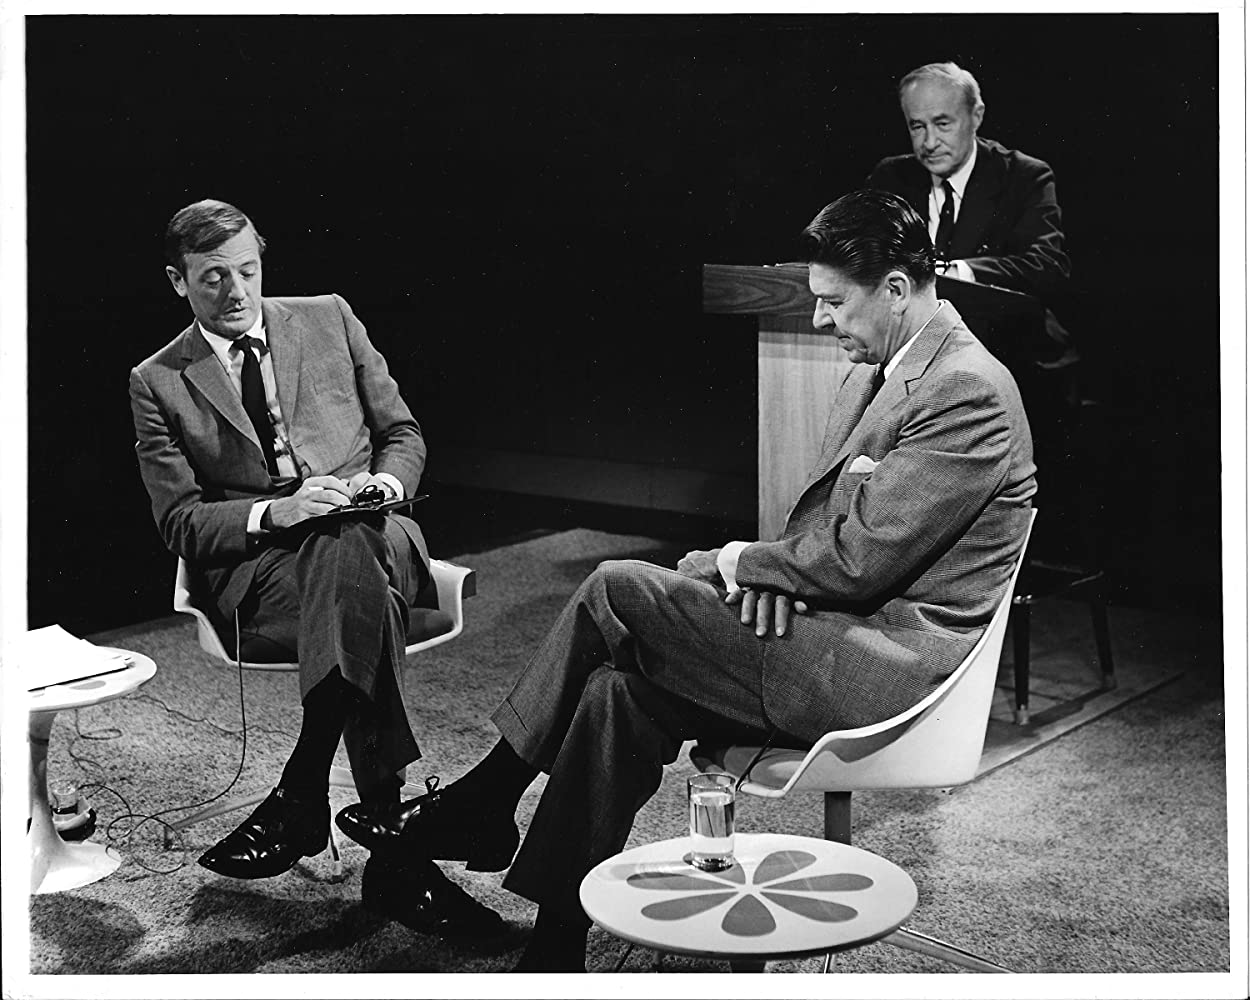 Ronald Reagan, William F. Buckley, and C. Dickerman Williams in Firing Line (1966)